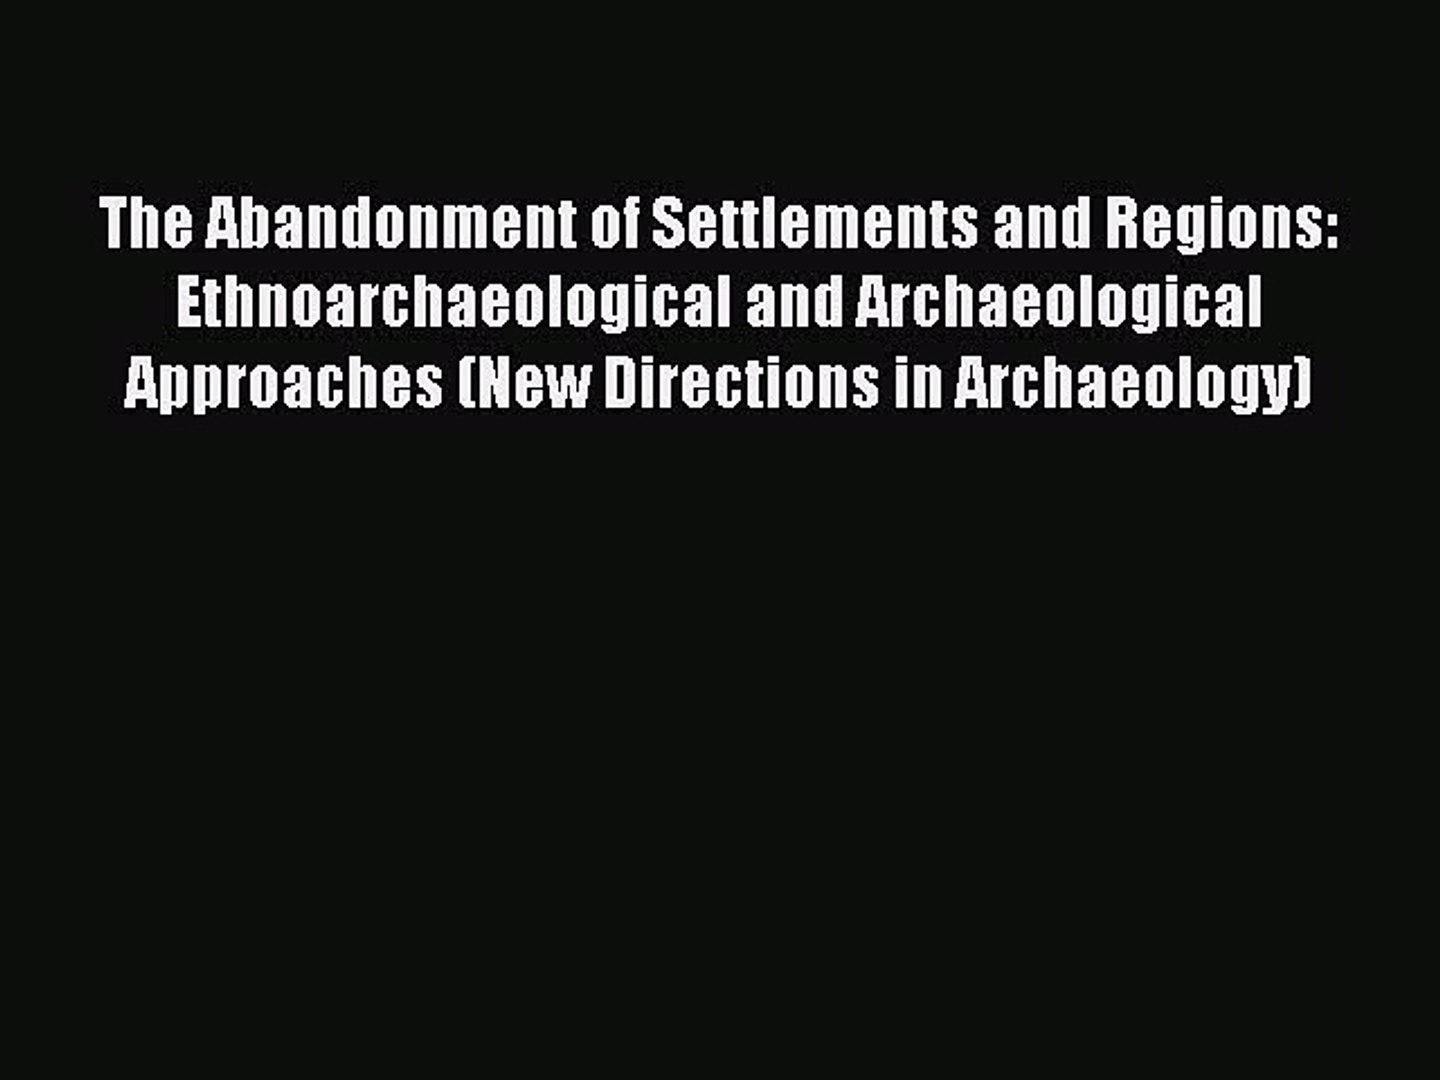 Download The Abandonment of Settlements and Regions: Ethnoarchaeological and Archaeological